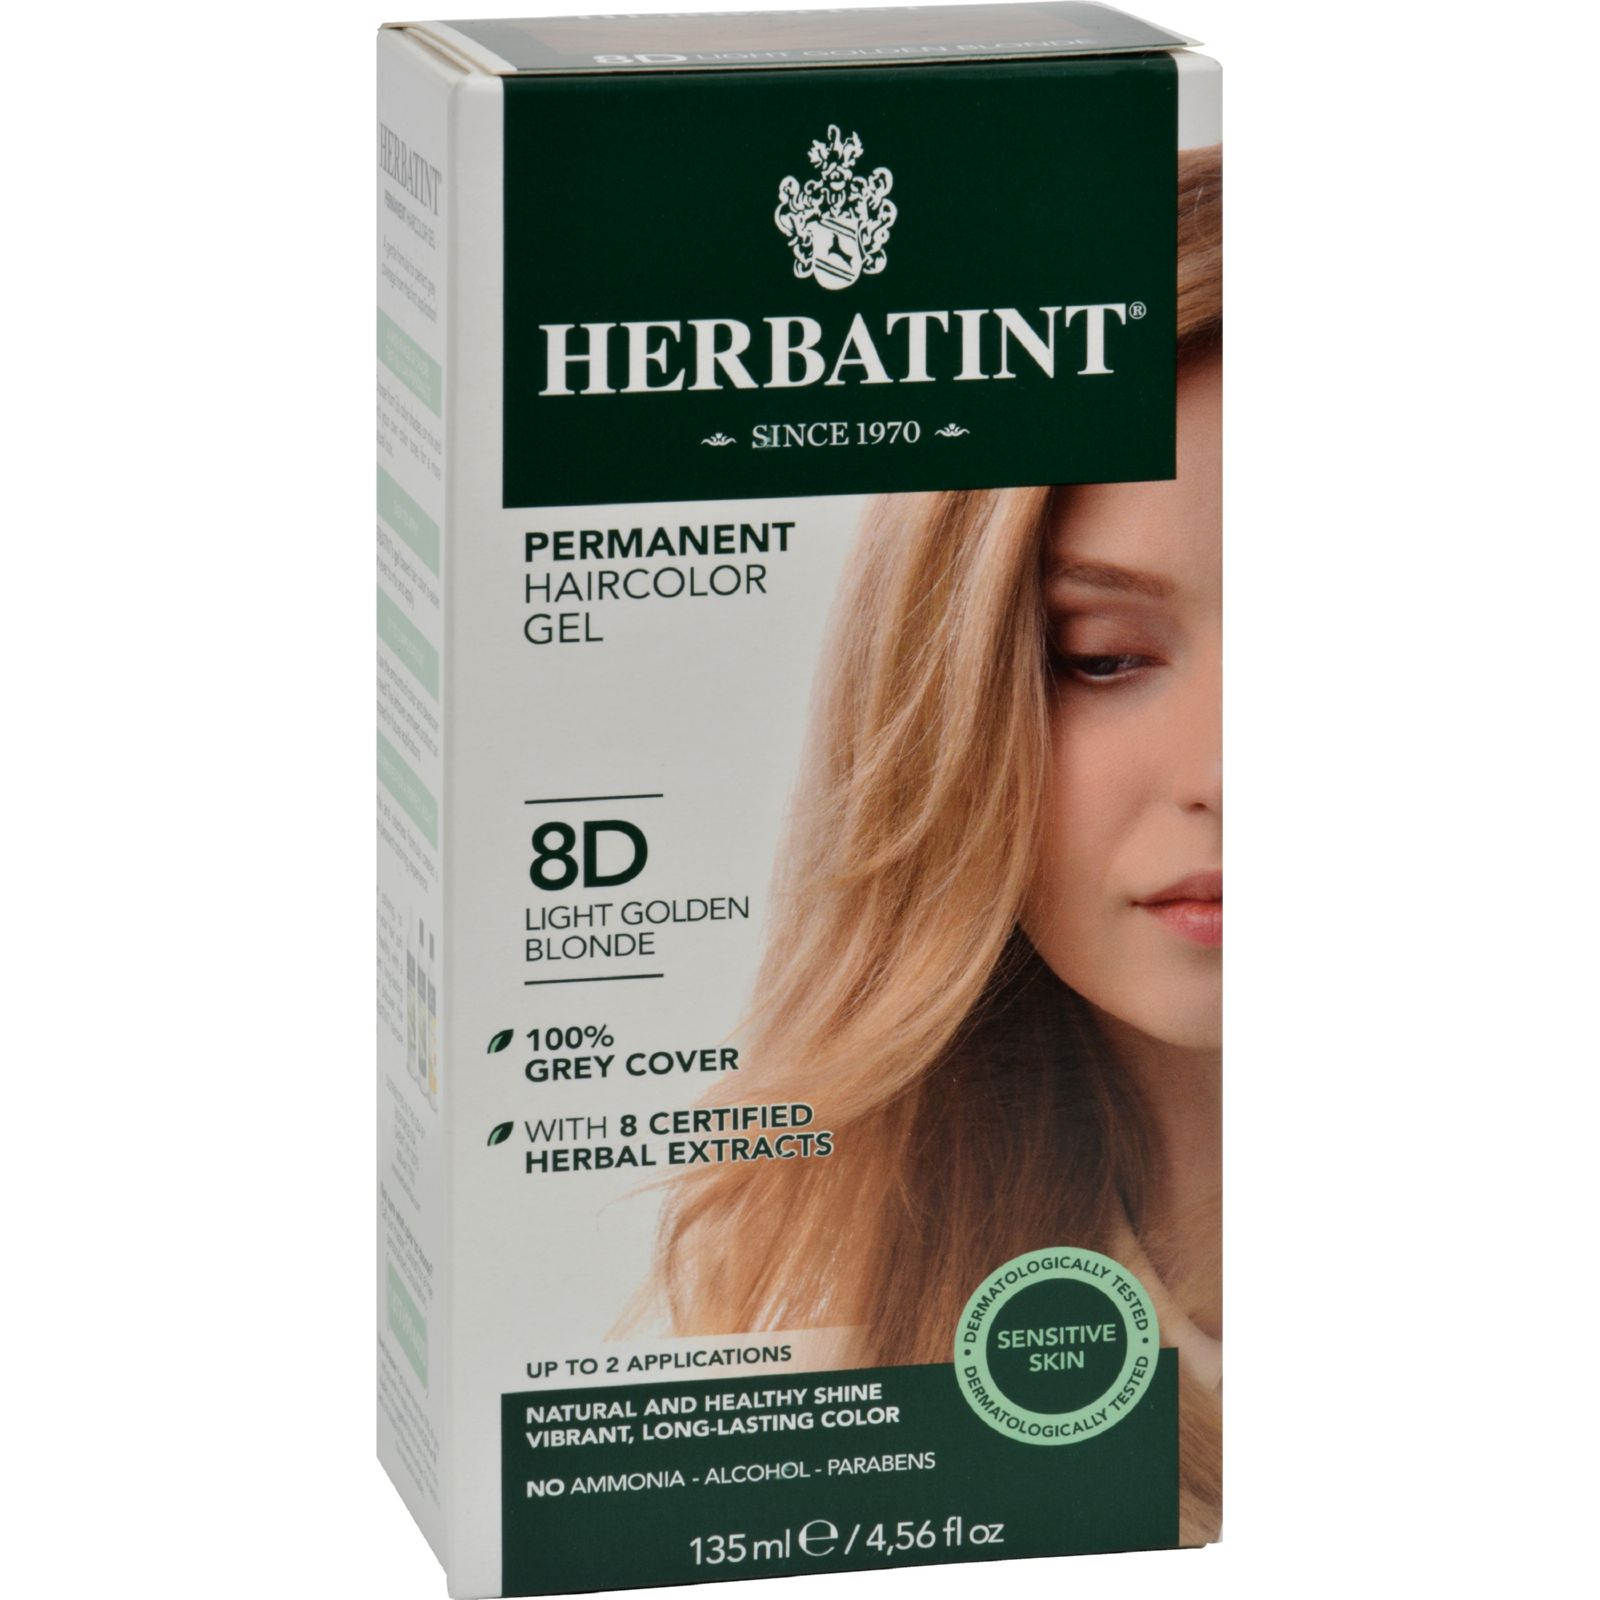 herbatint permanent herbal haircolour gel 8d light golden blonde 135 ml. Black Bedroom Furniture Sets. Home Design Ideas